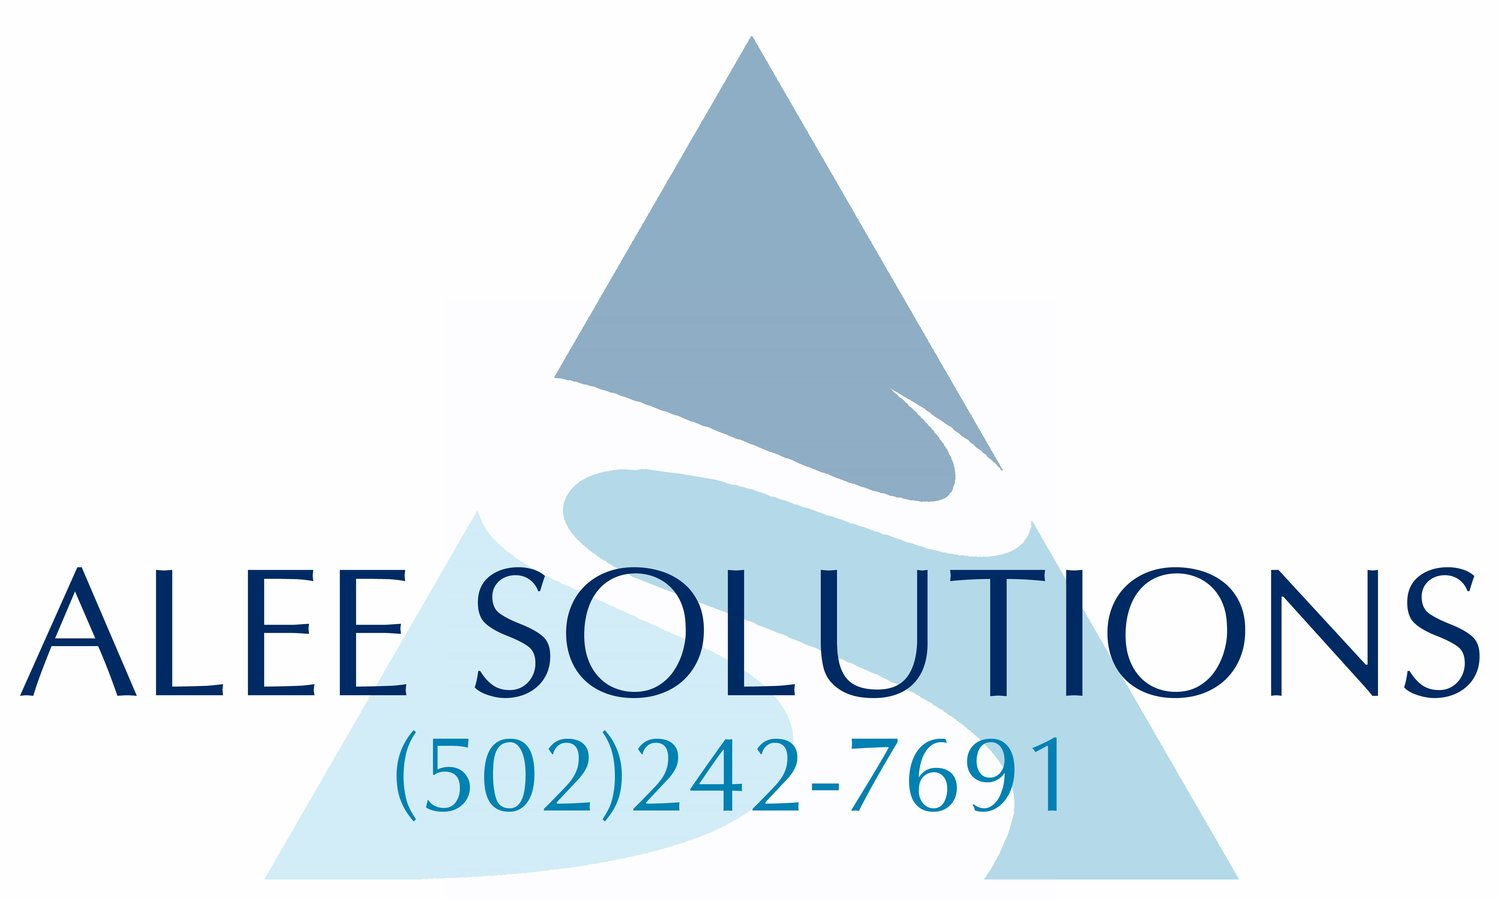 Alee Solutions